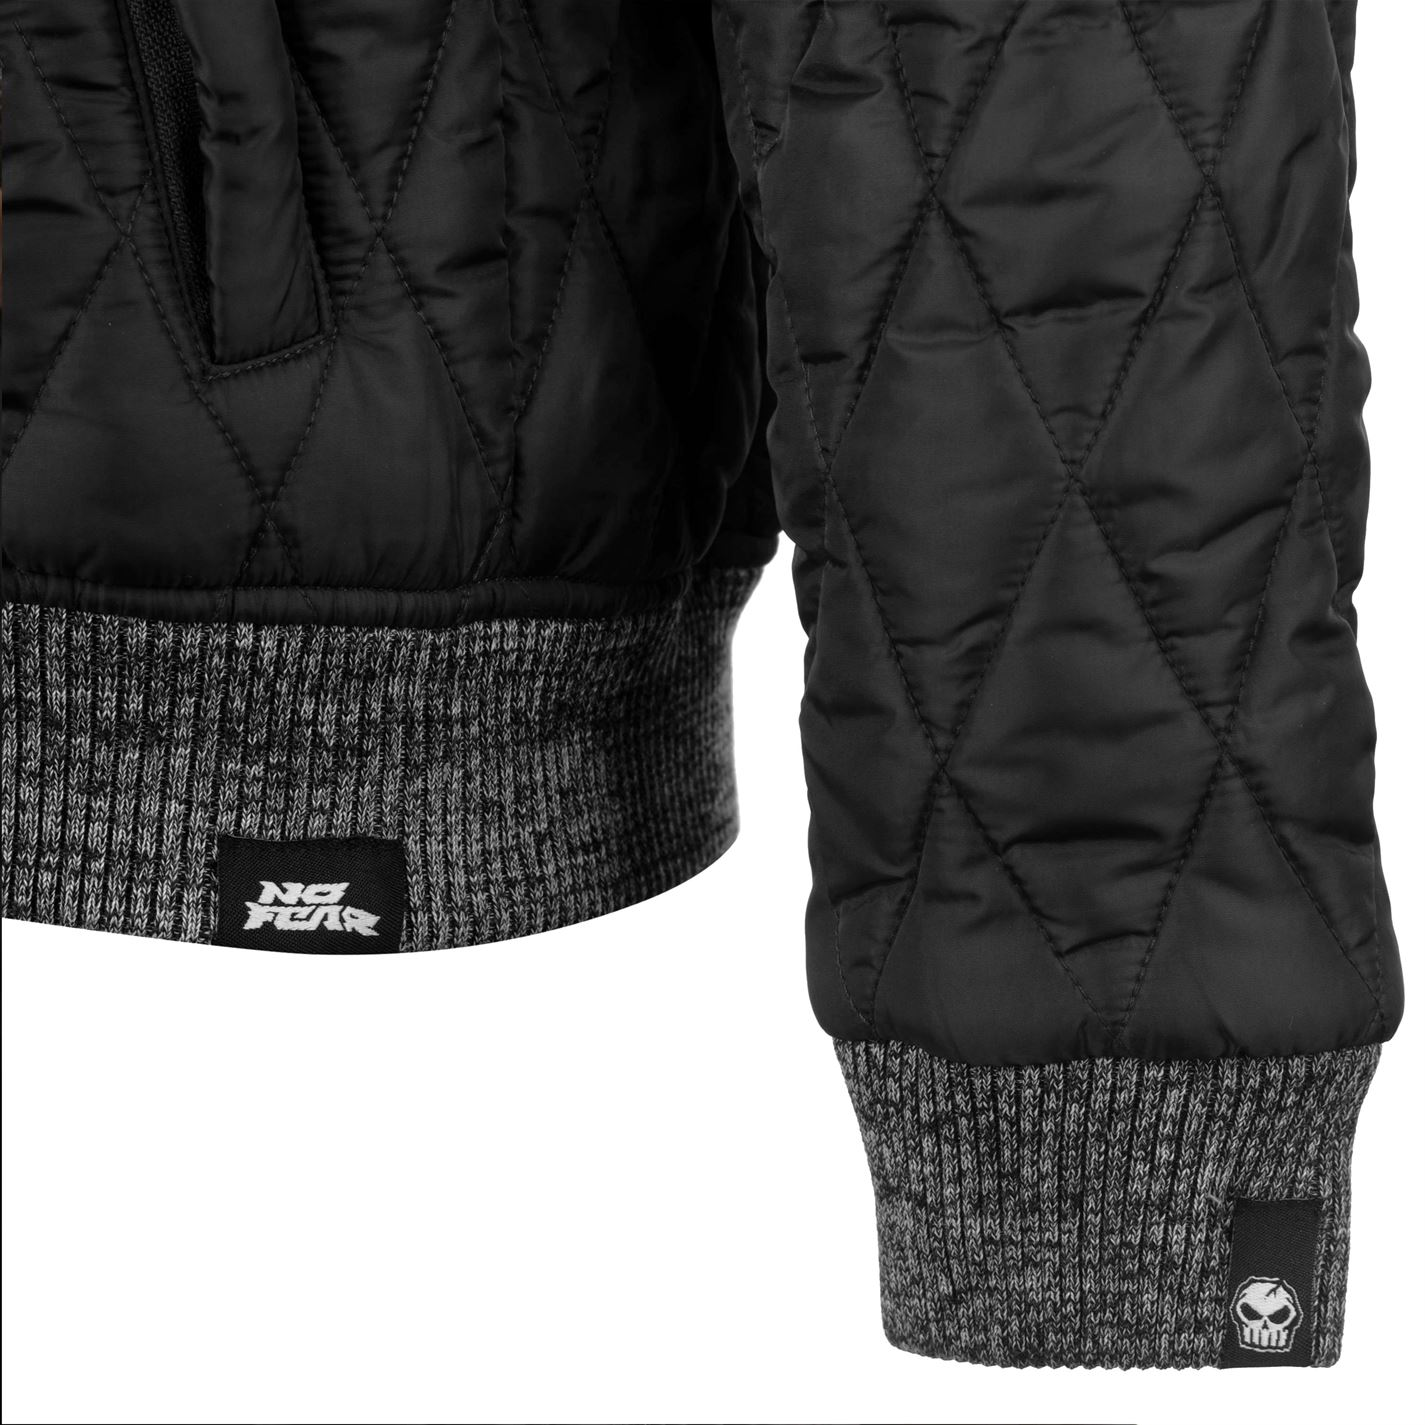 No-Fear-Quilted-Bomber-Jacket-Mens-Gents-Coat-Top-Full-Length-Sleeve-Zip-Zipped thumbnail 8